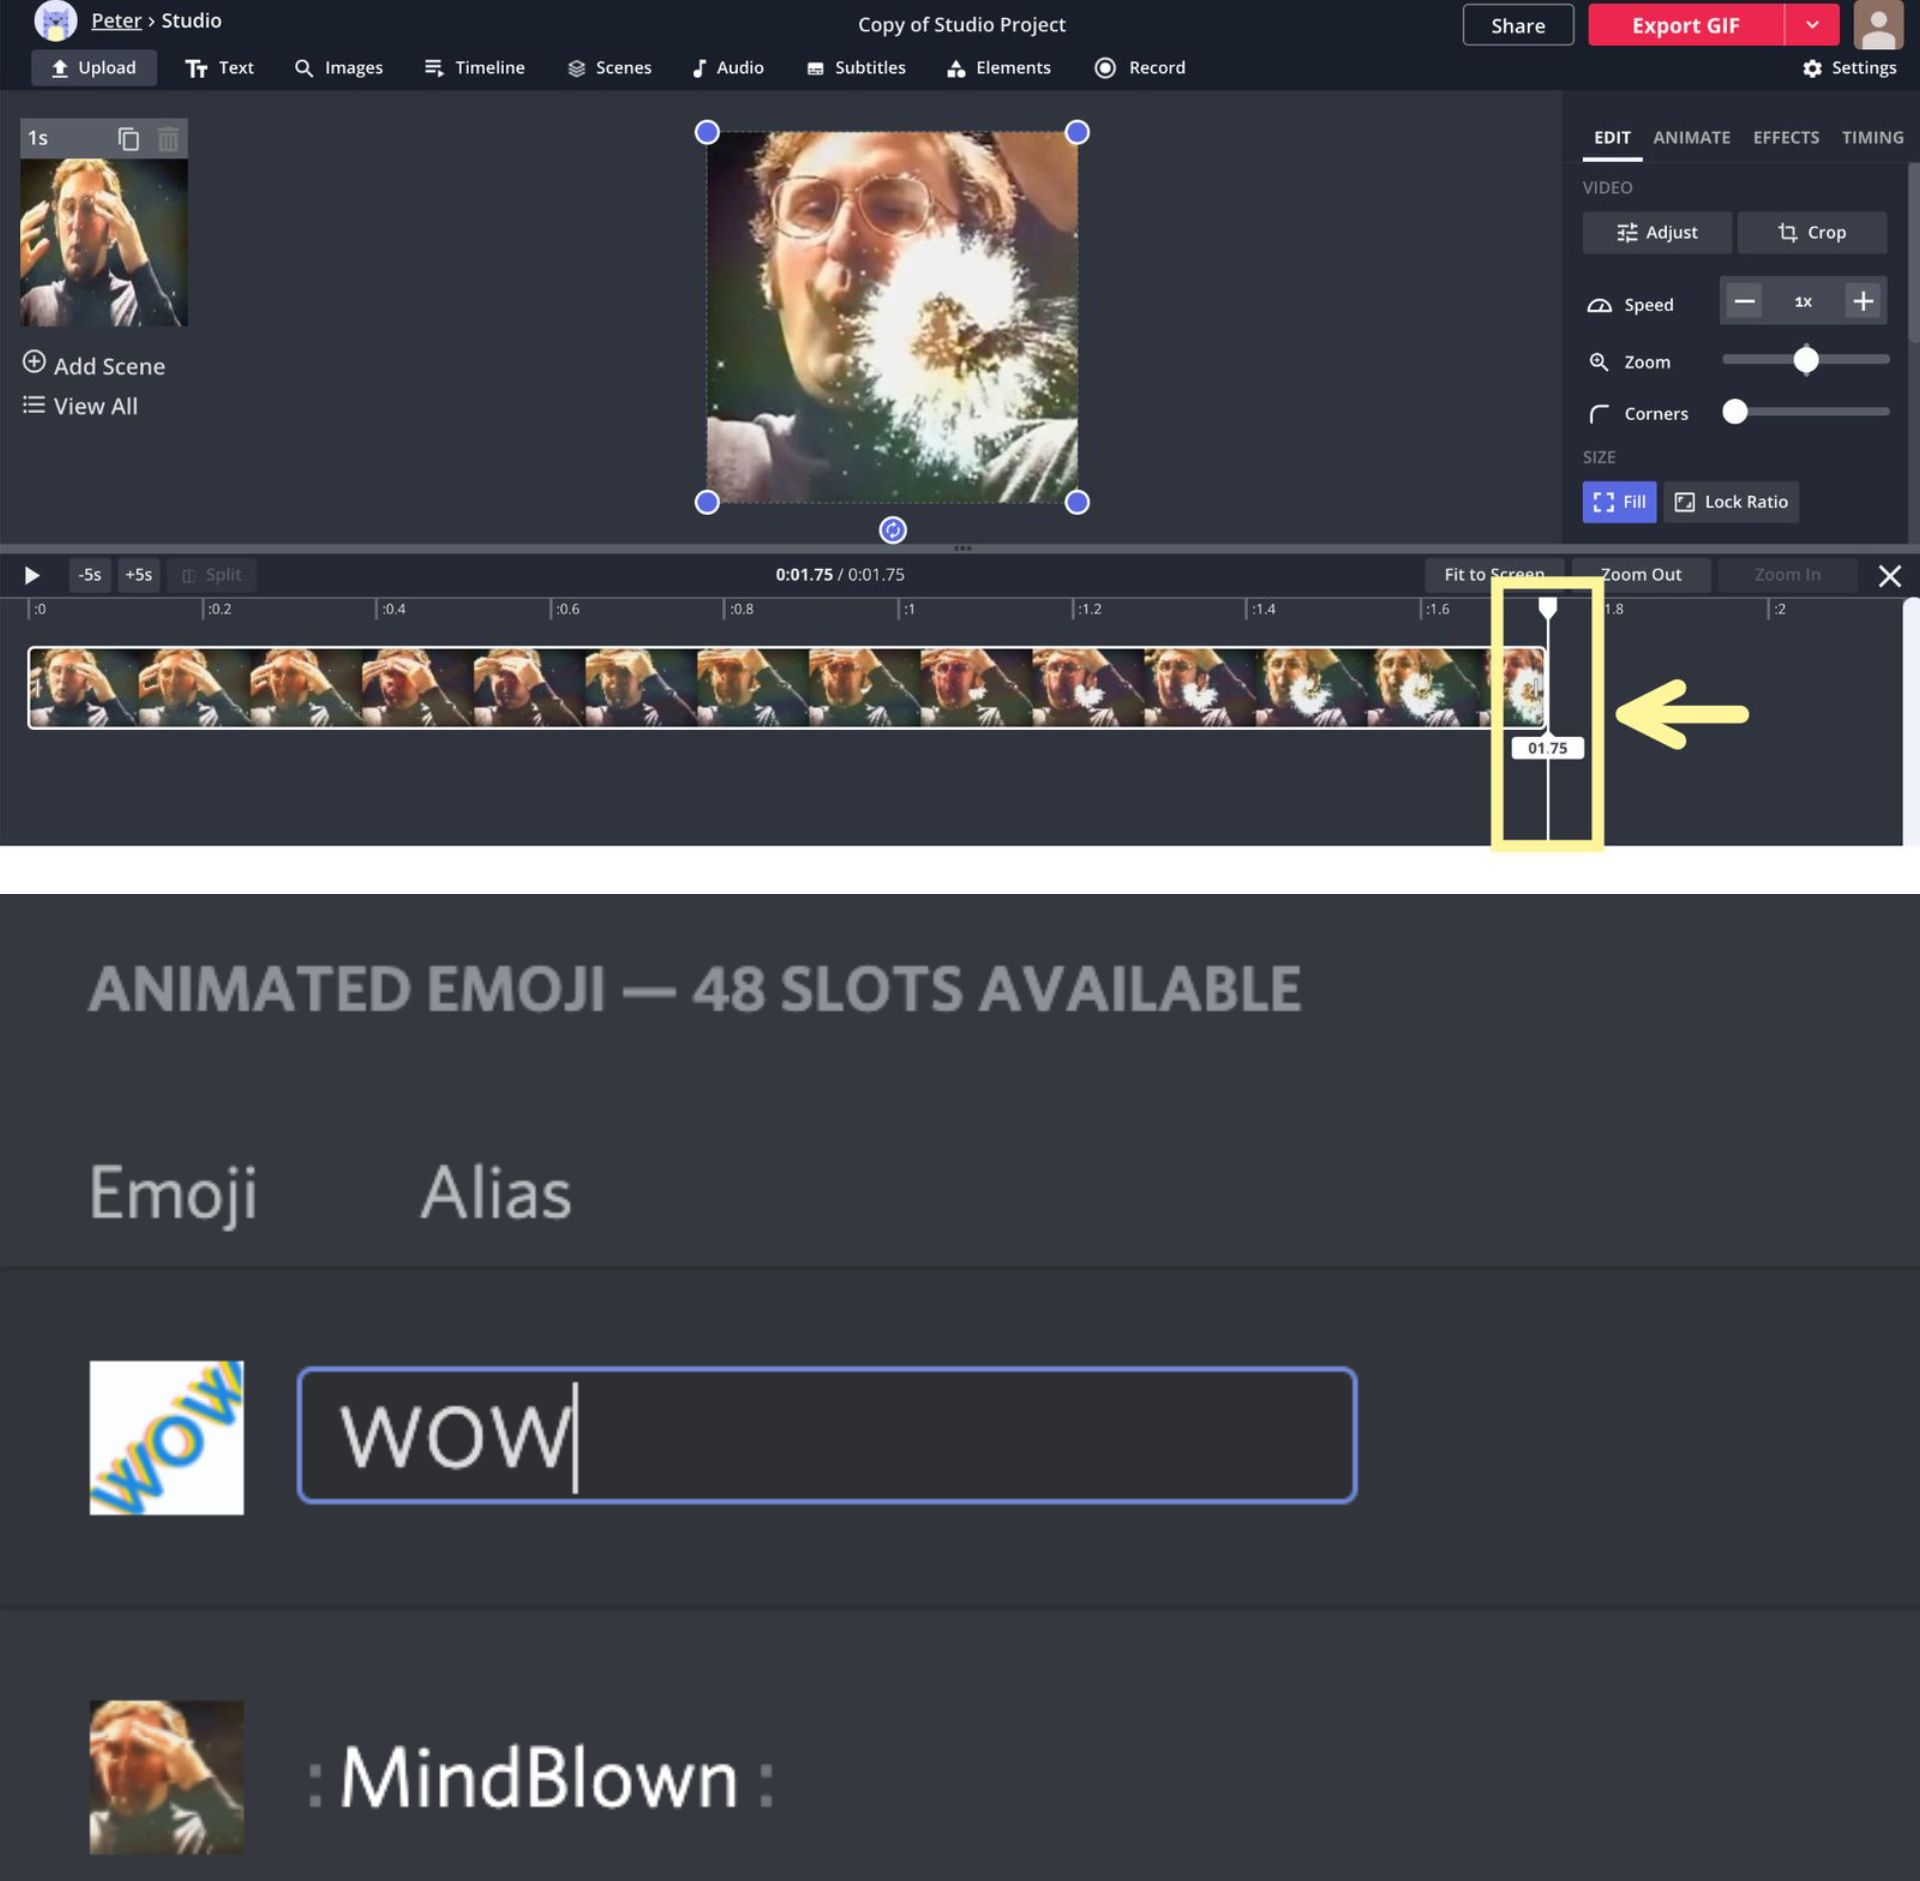 Screenshots showing how to create an animated GIF emoji in Kapwing and add it to a Discord server.